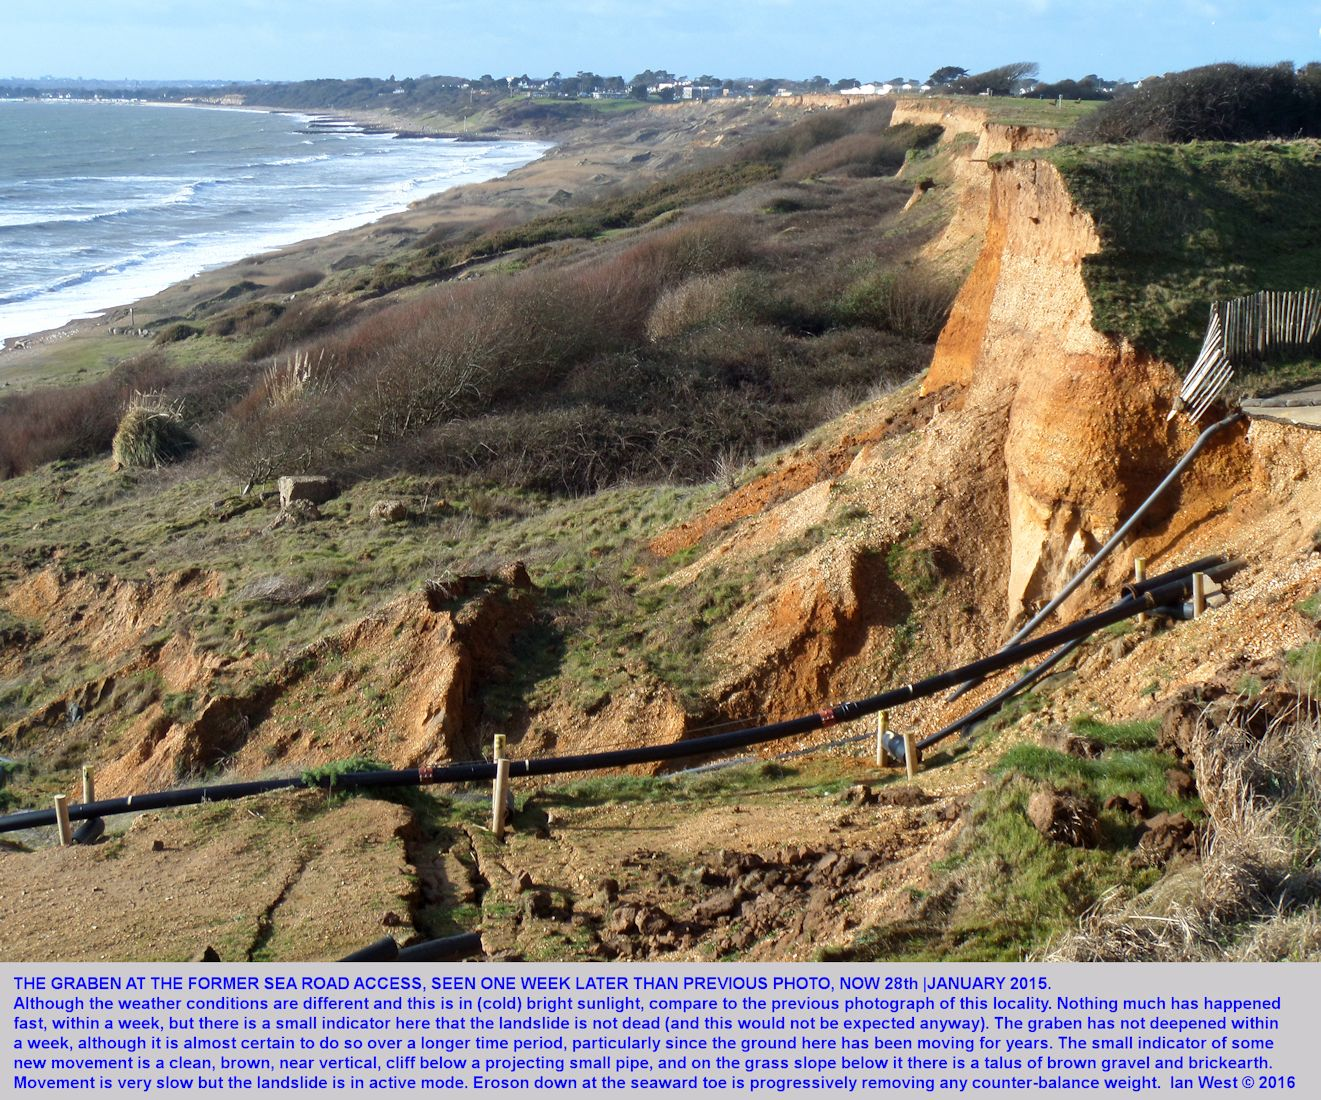 Another view of the new, well-defined mudslide at the Old Sea Road Access, with plastic drainage piping, seen a week later than a previous photograph, note minor cliff fall, Barton-on-Sea, Hampshire, 28th January 2016